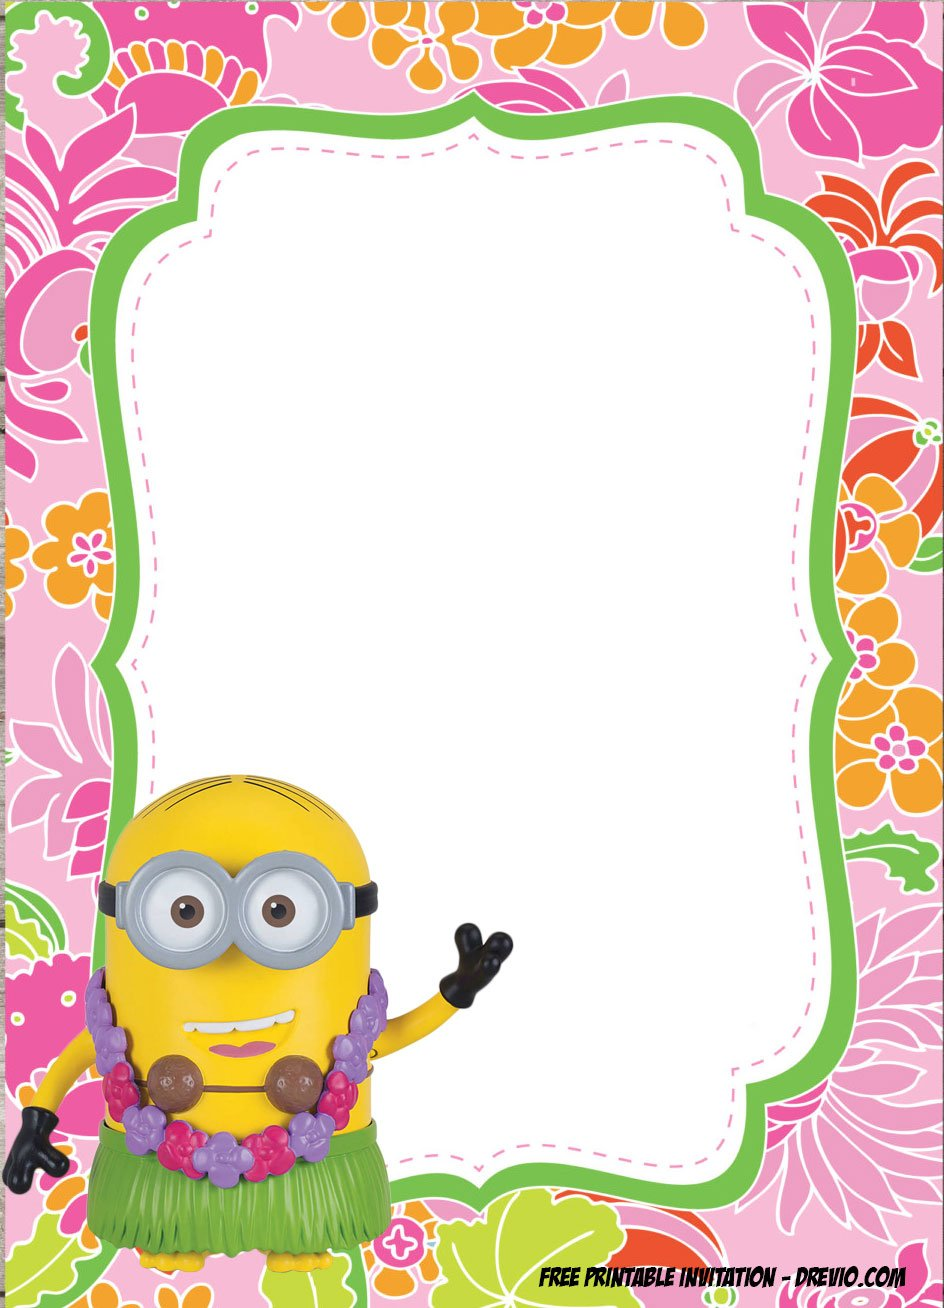 Free Minions Luau Birthday Invitation Template Special For Summer